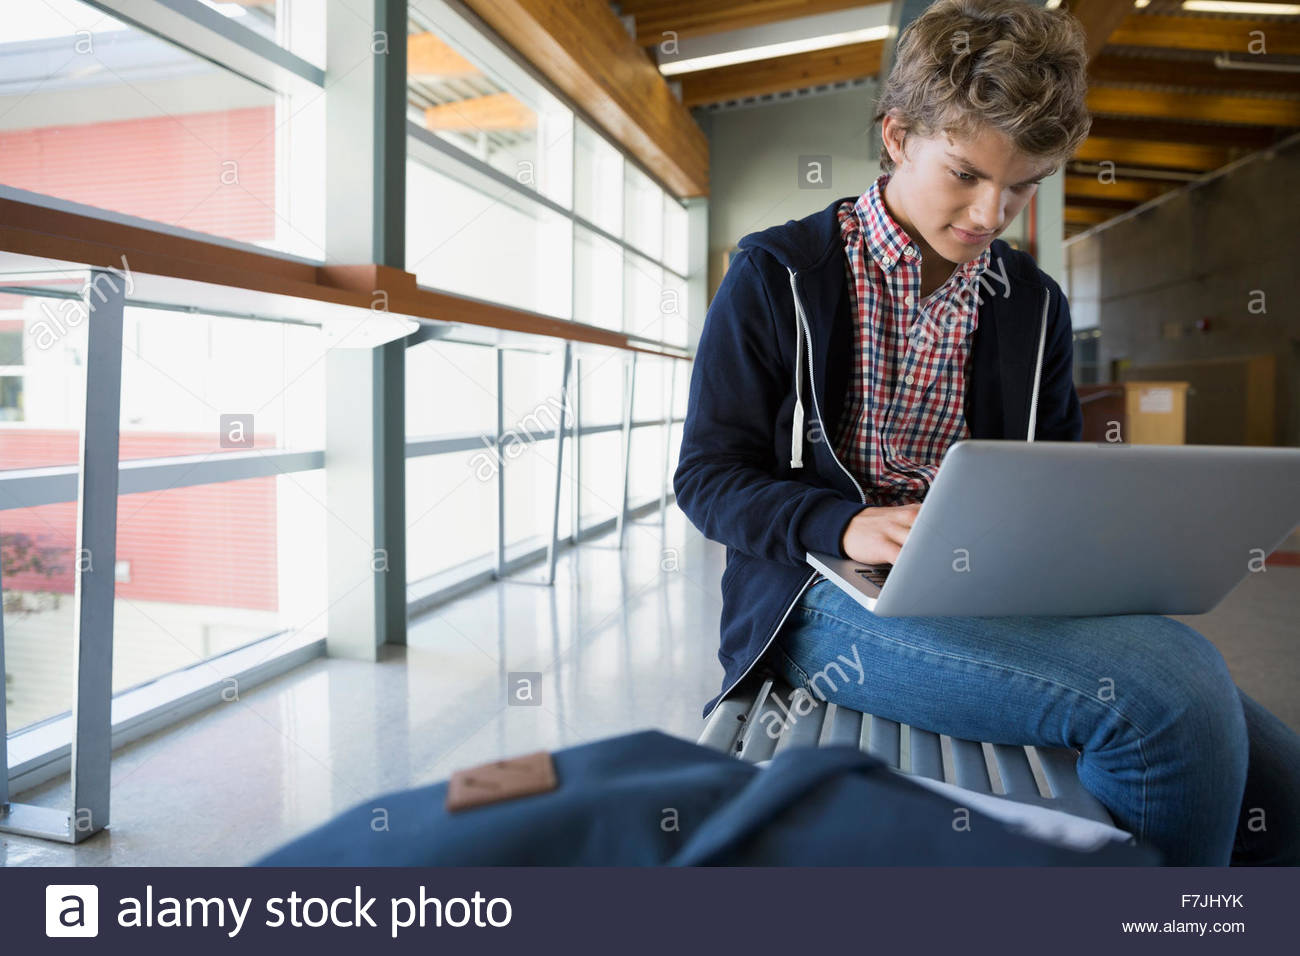 High school student using laptop on bench - Stock Image